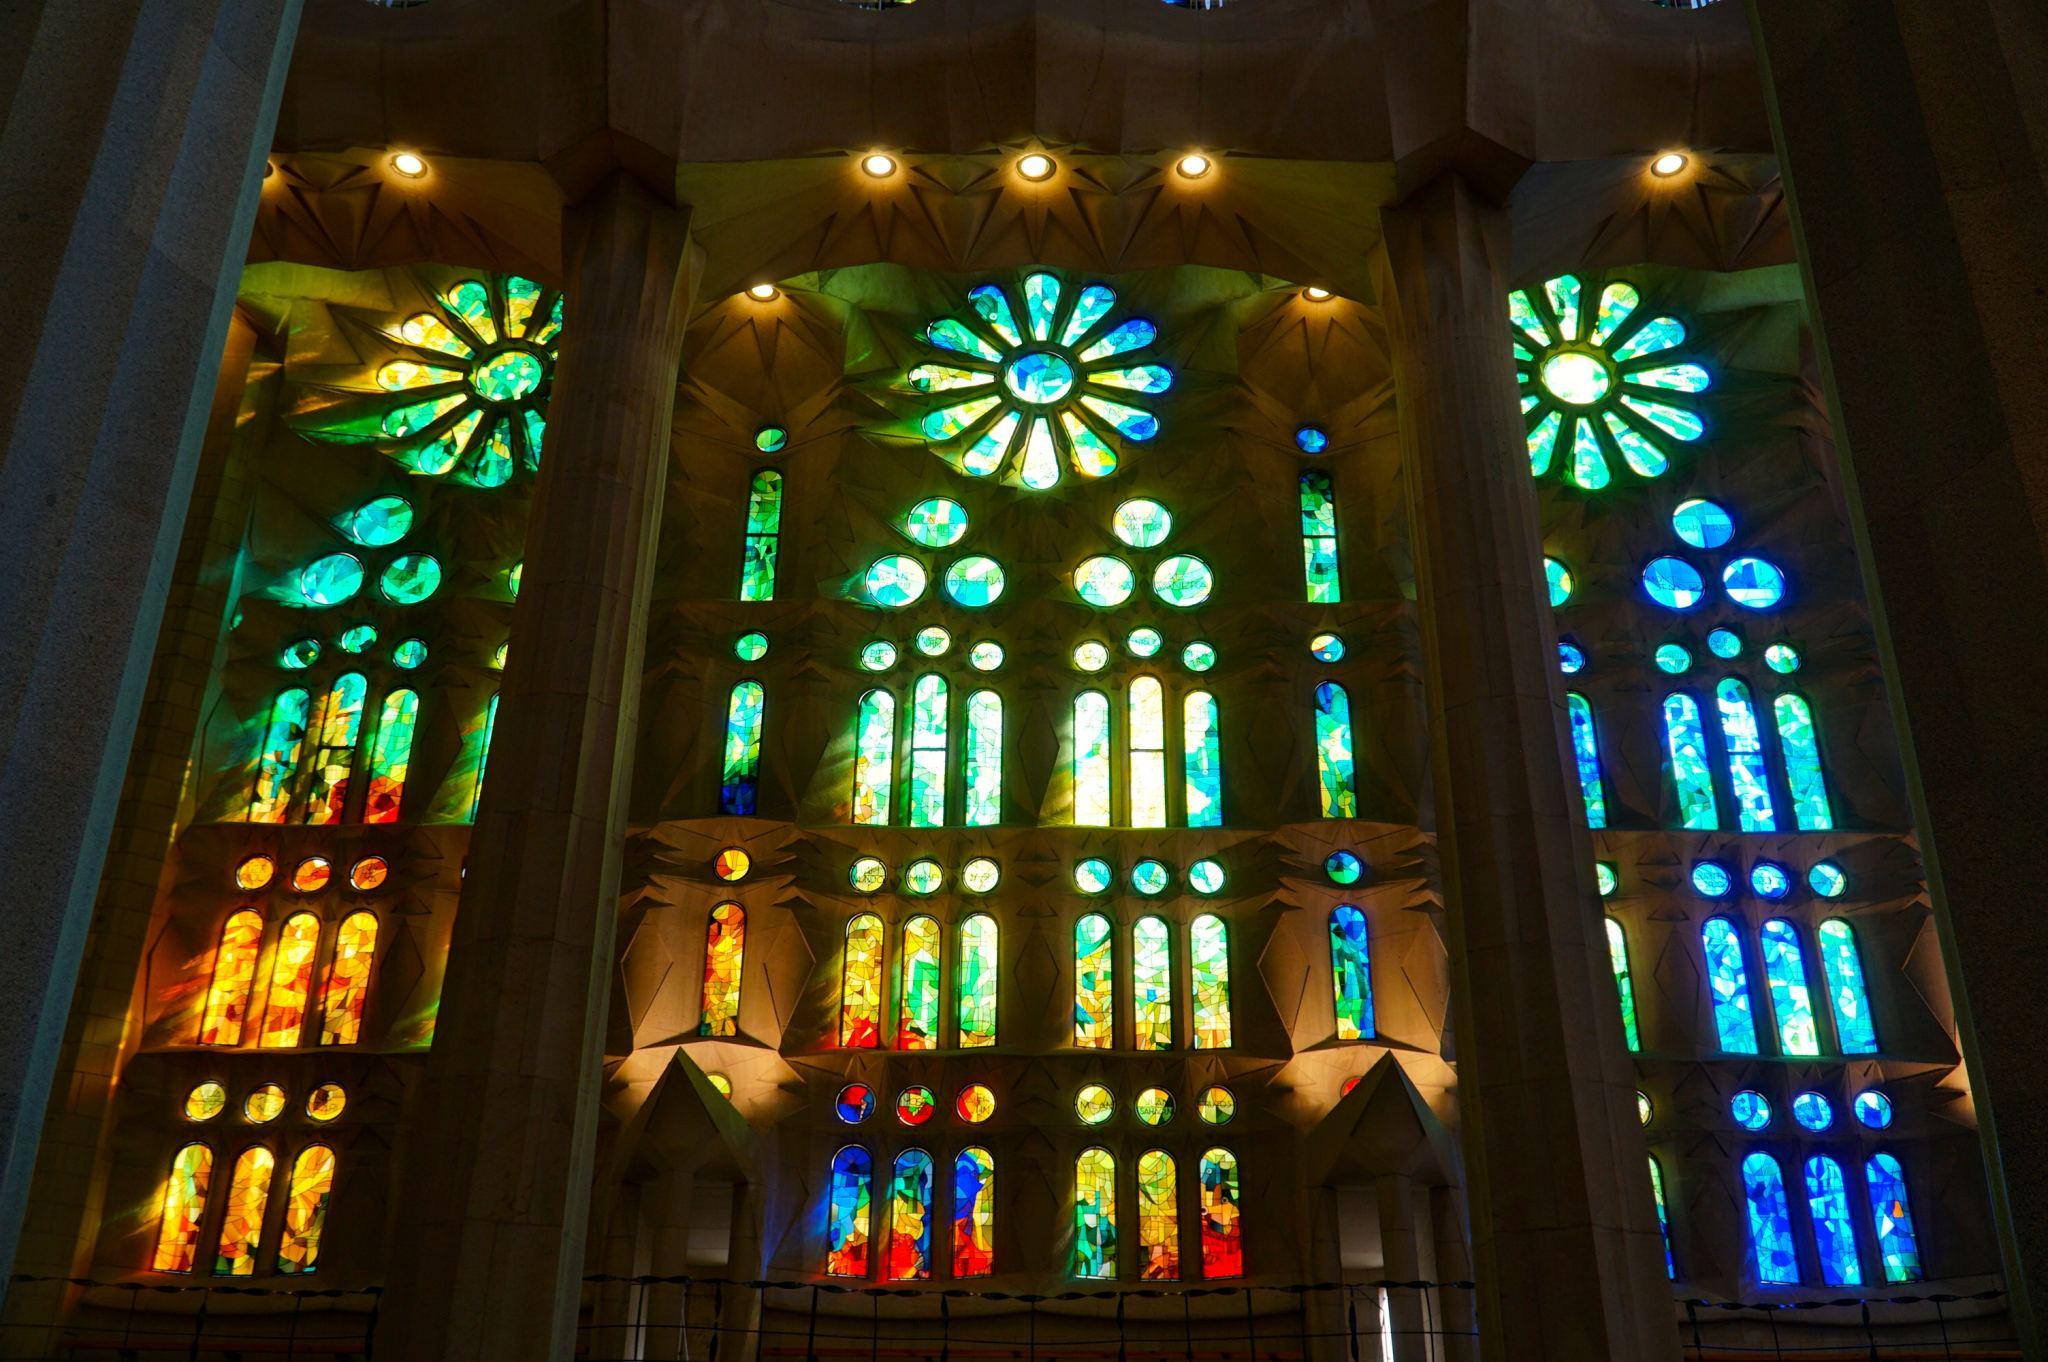 Looking at the stained-glass windows in the Sagrada Familia by Gaudi.